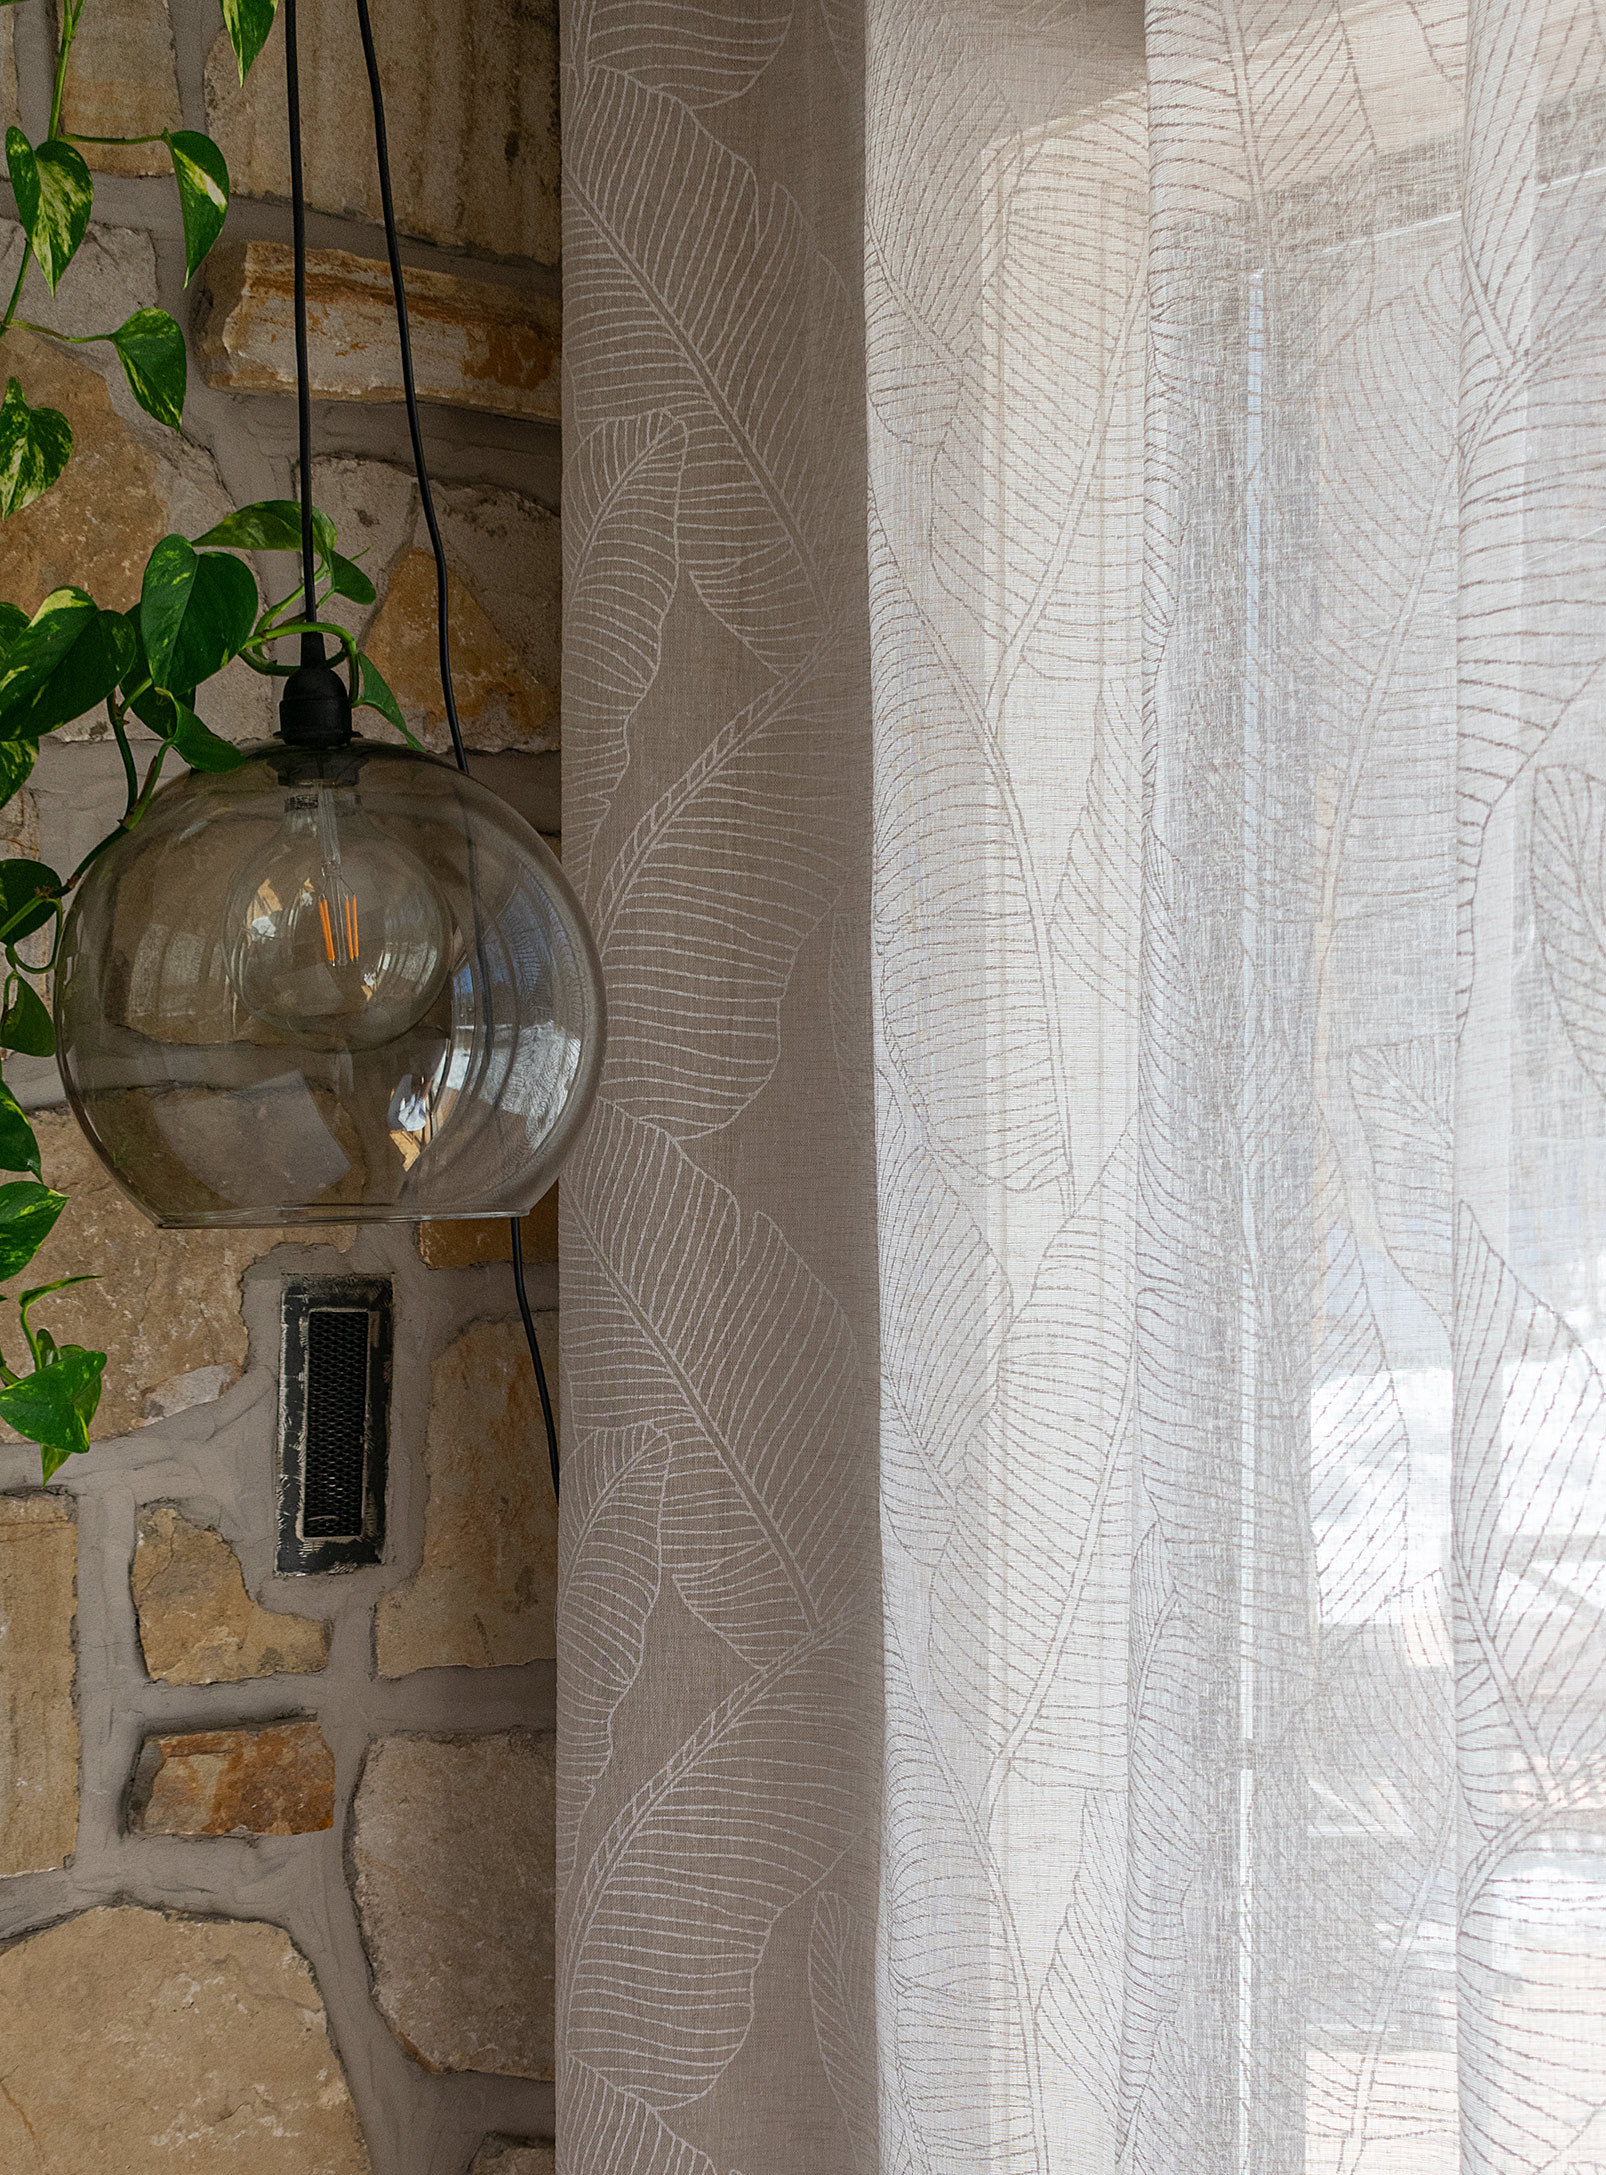 the banana leaf curtains on a window next to a wall and lamp